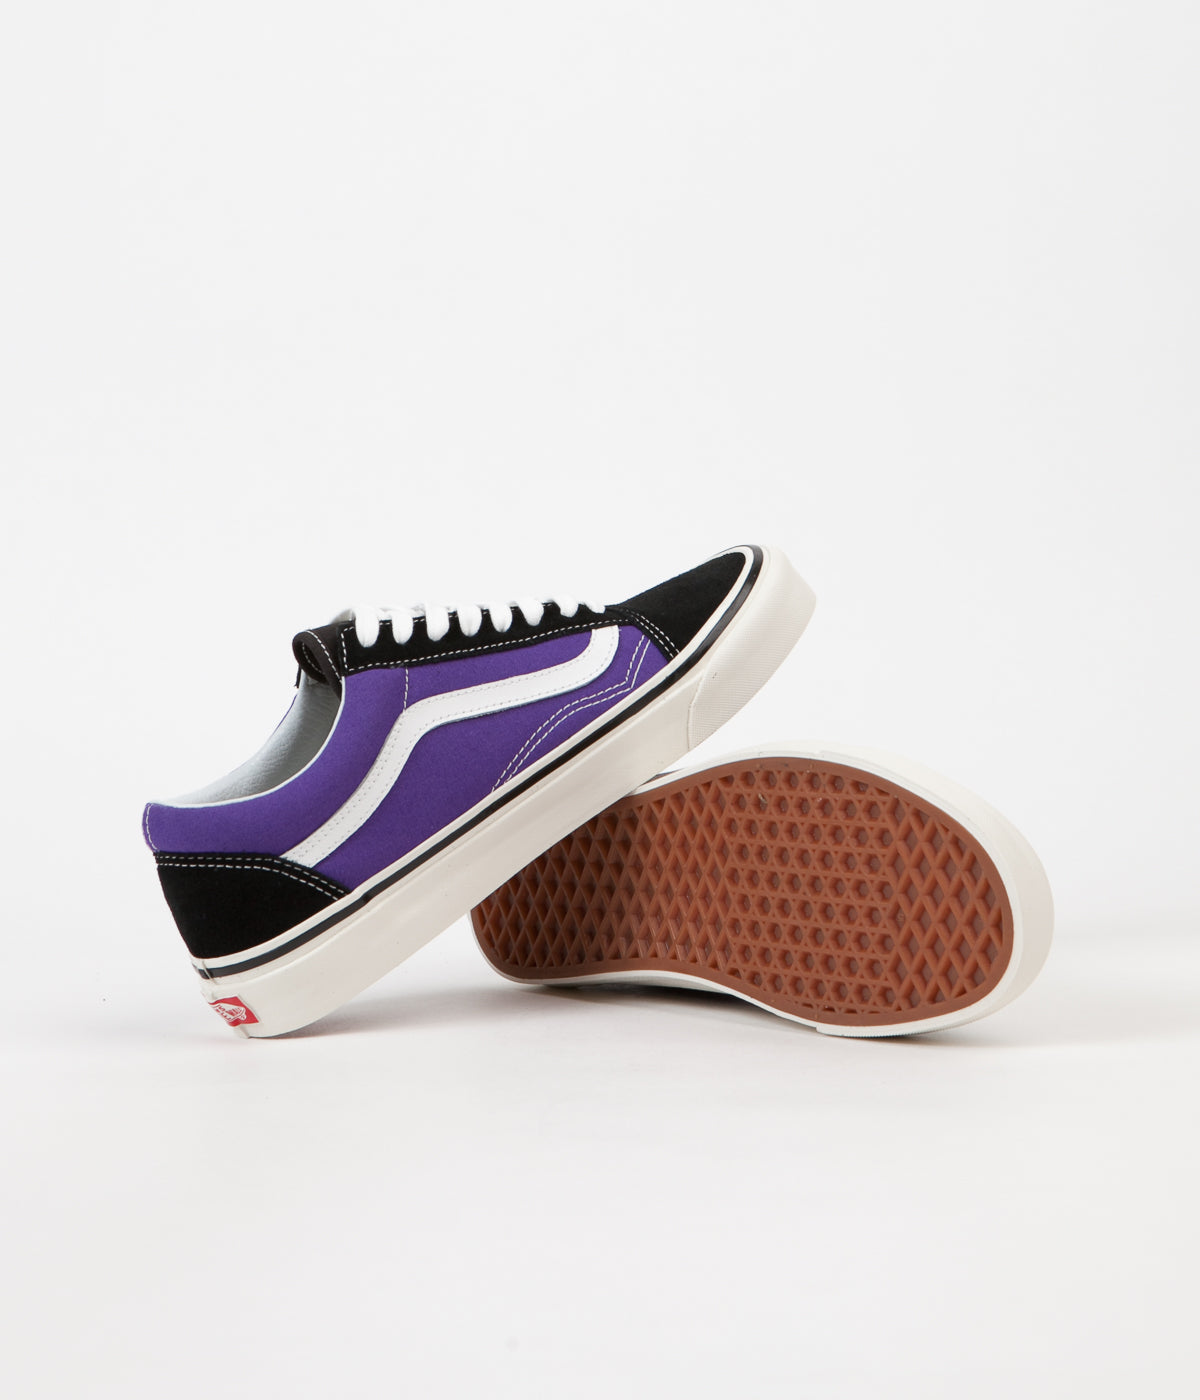 5617d73b79 ... Vans Old Skool 36 DX Anaheim Factory Shoes - Black   OG Bright Purple  ...